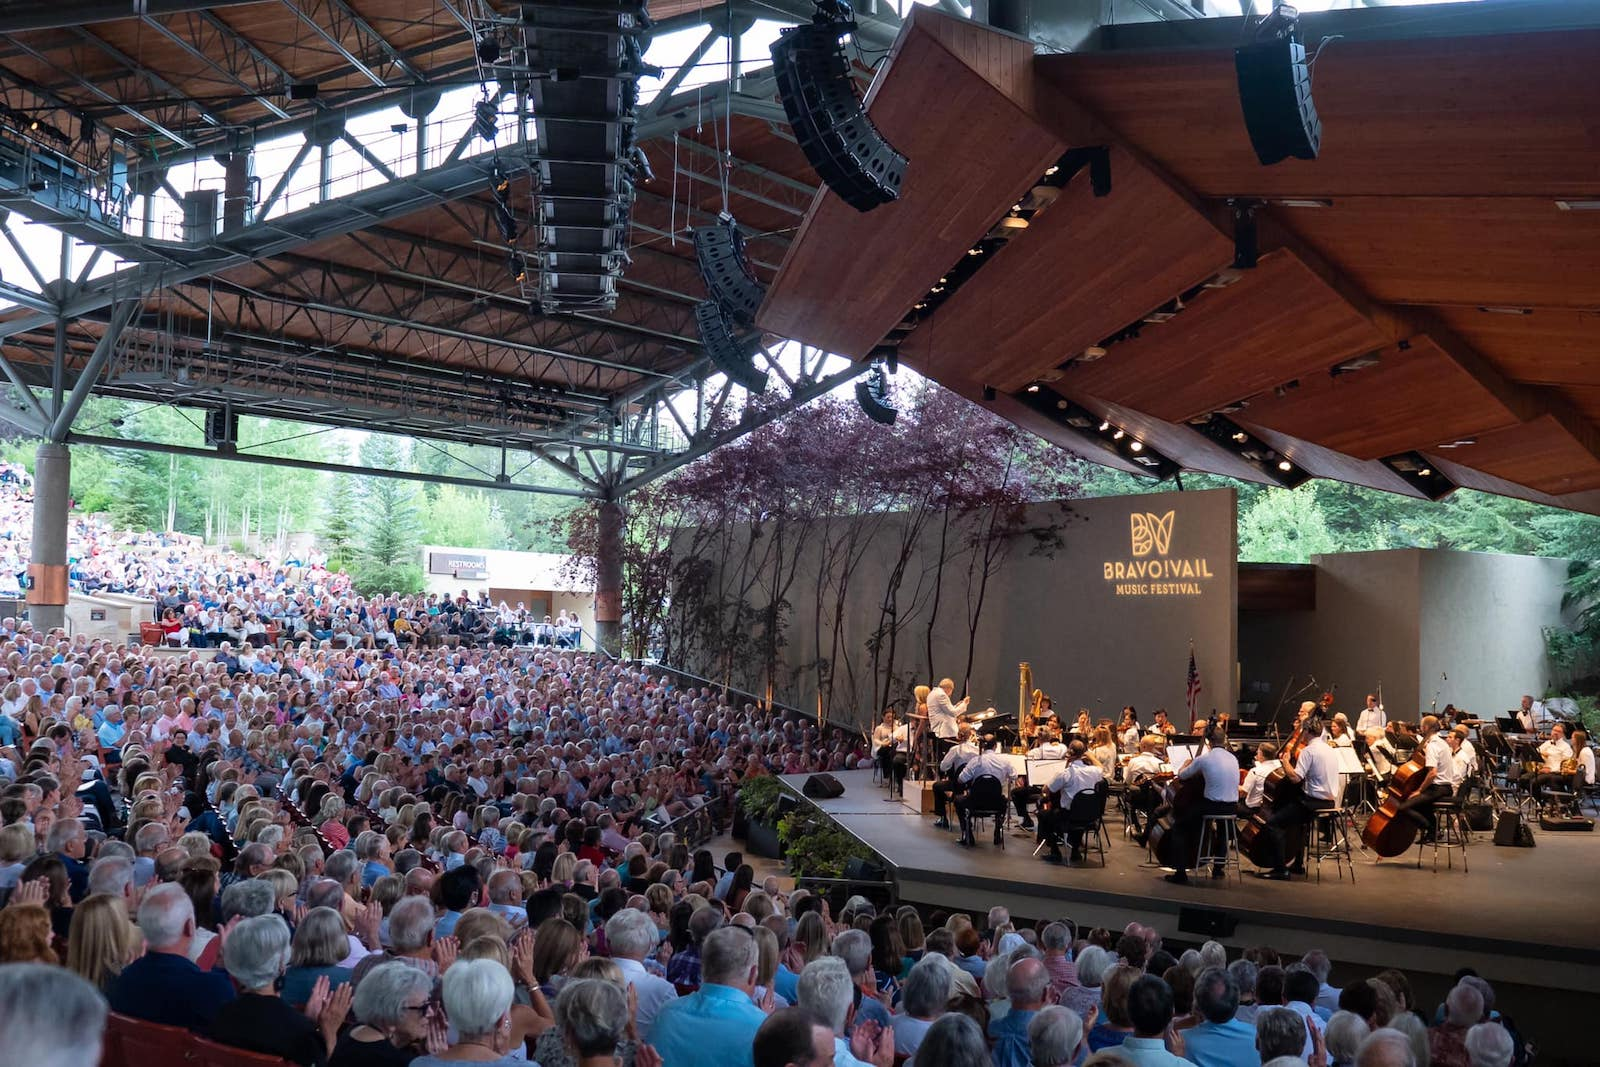 Image of the audience at the Bravo! Vail Music Festival in Colorado